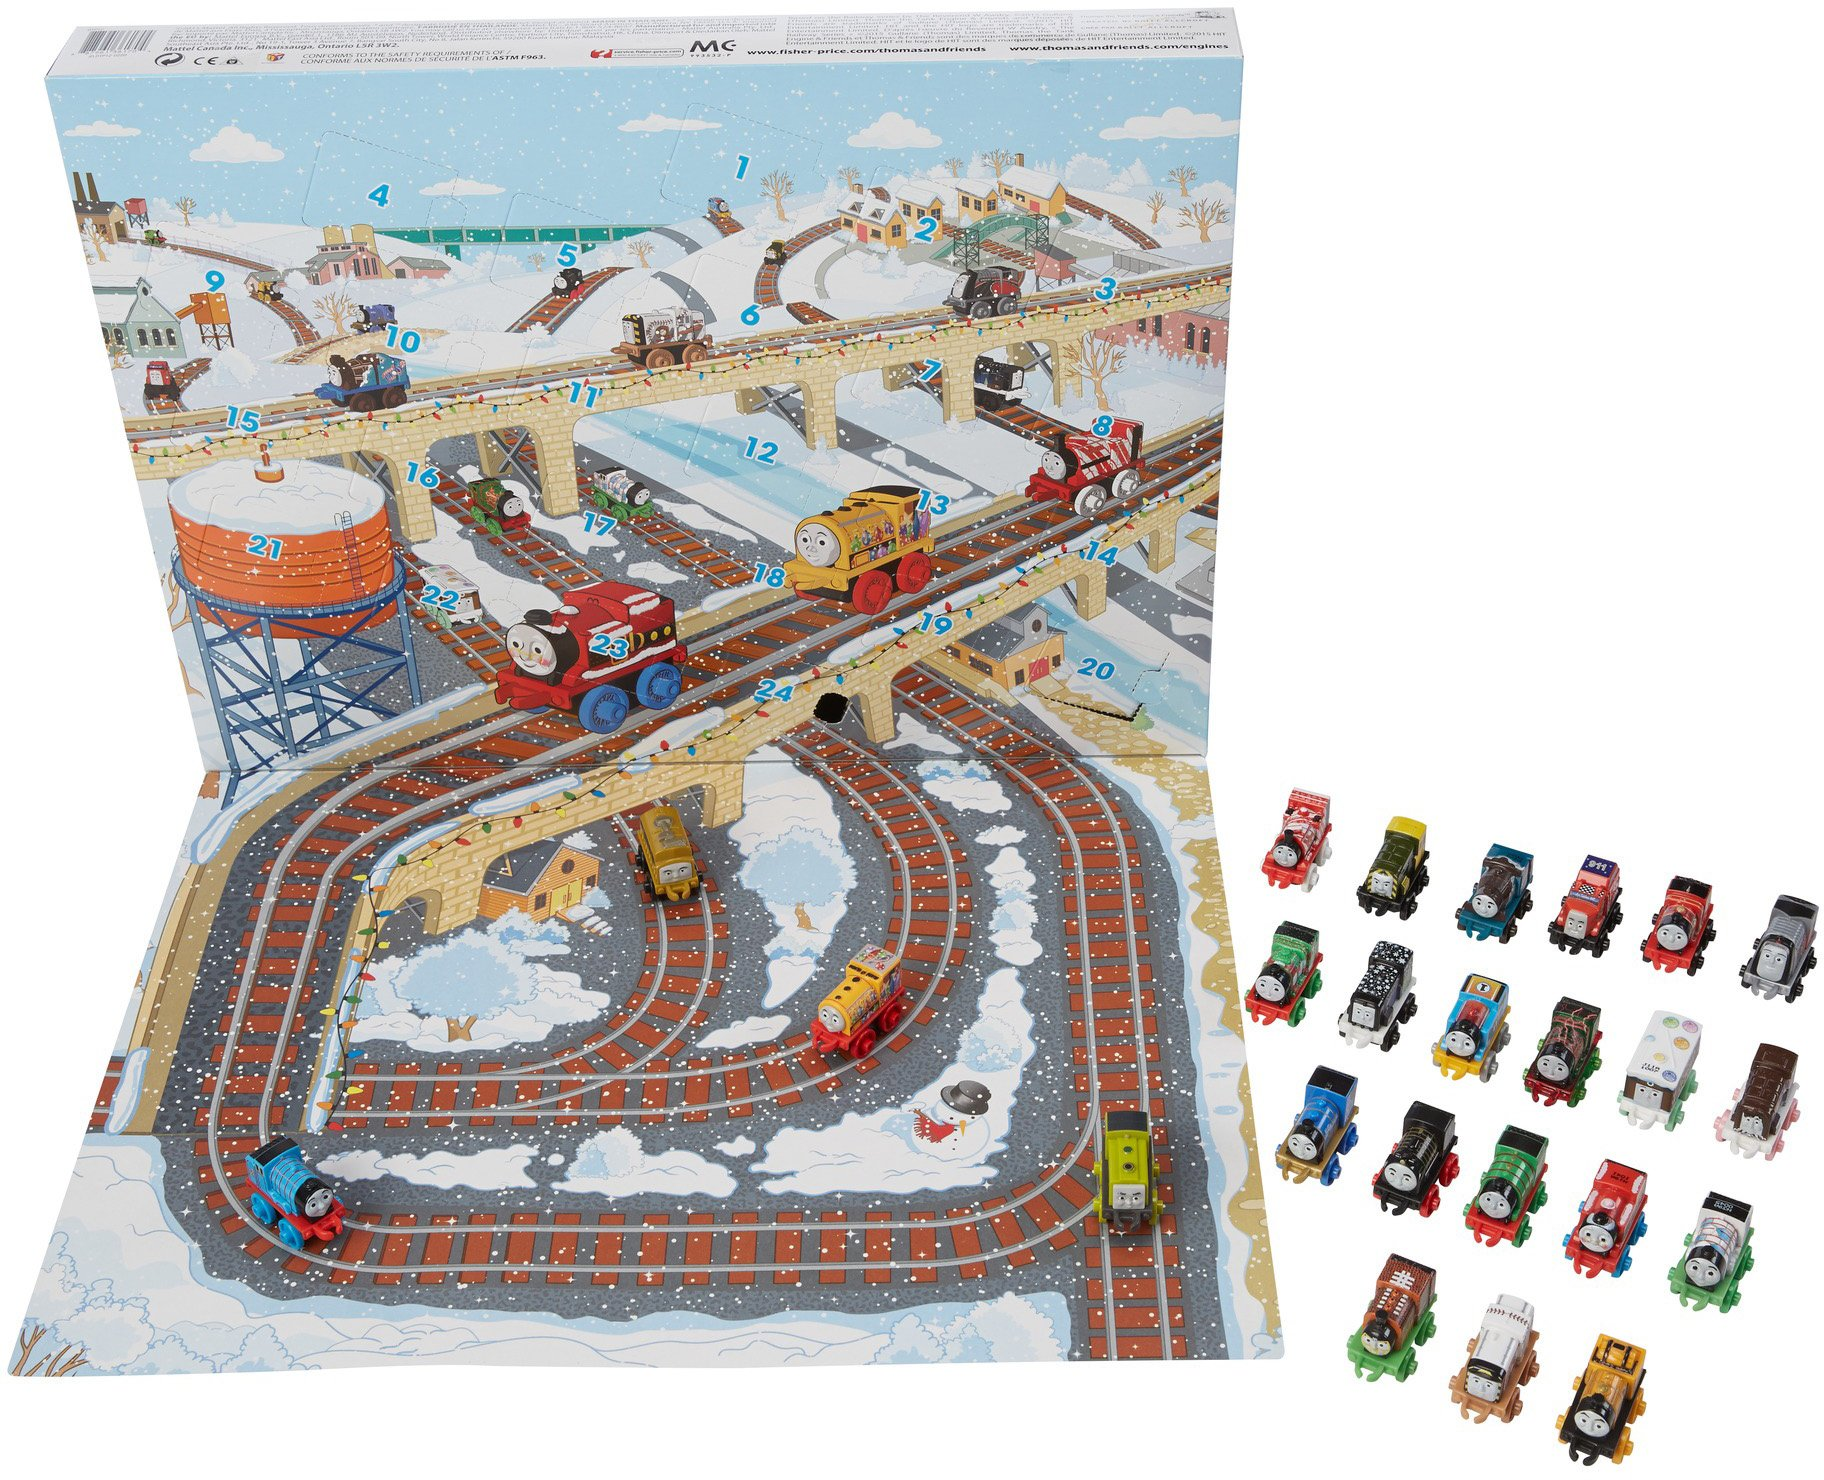 Thomas & Friends Fisher-Price MINIS, Advent Calendar by Thomas & Friends (Image #4)